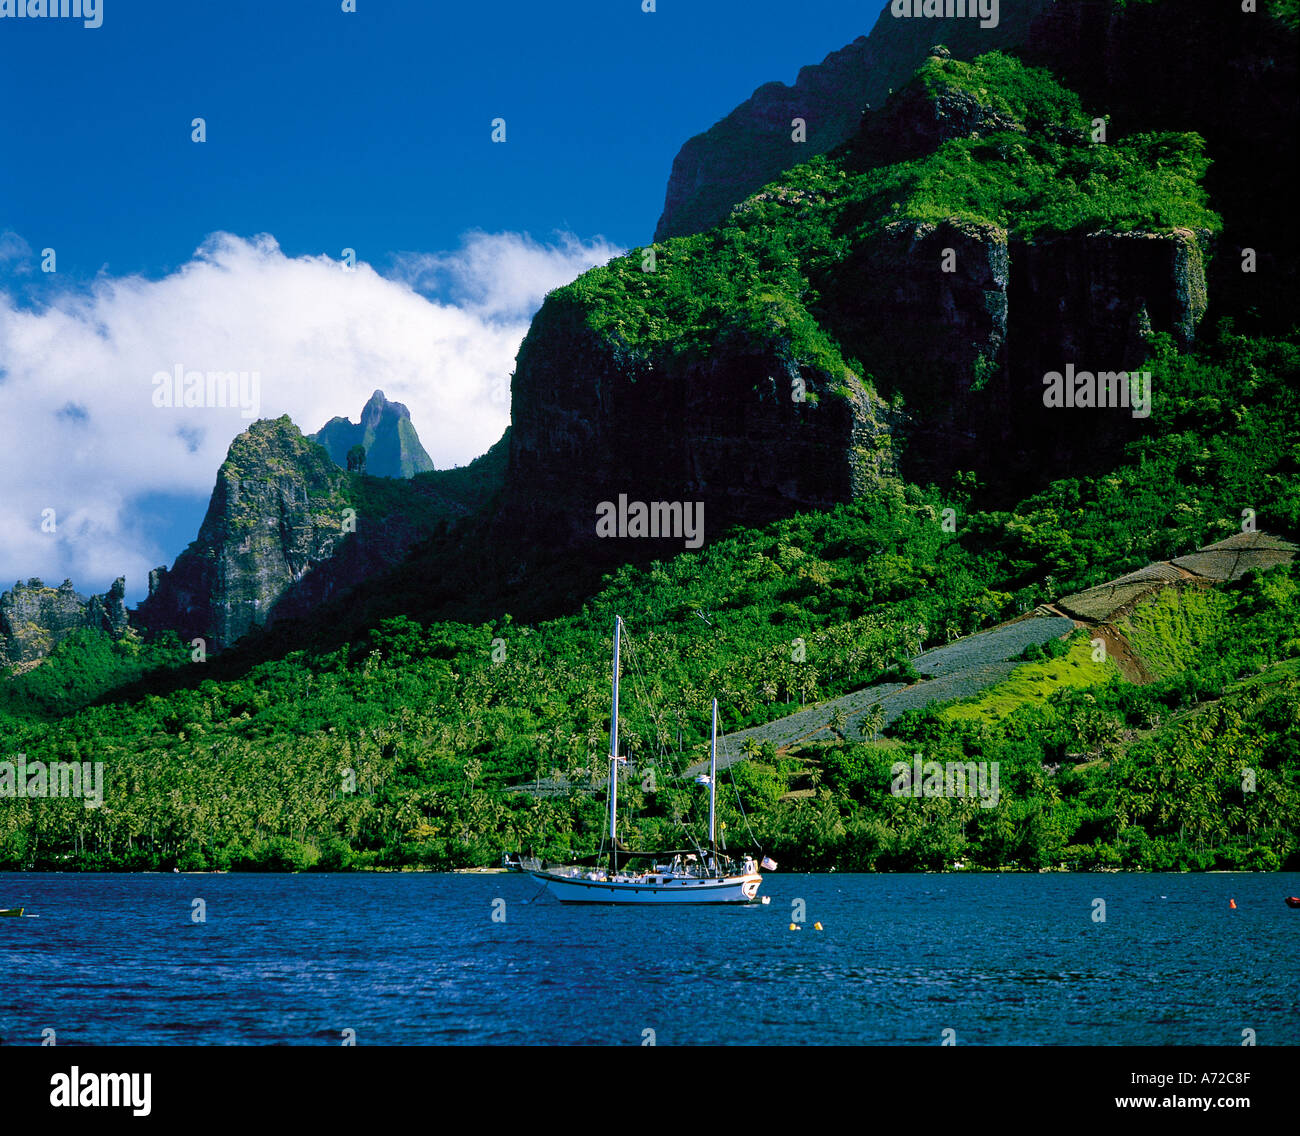 Mountains at Cooks Bay Moorea Tahiti Society Islands French Polynesia South Pacific - Stock Image